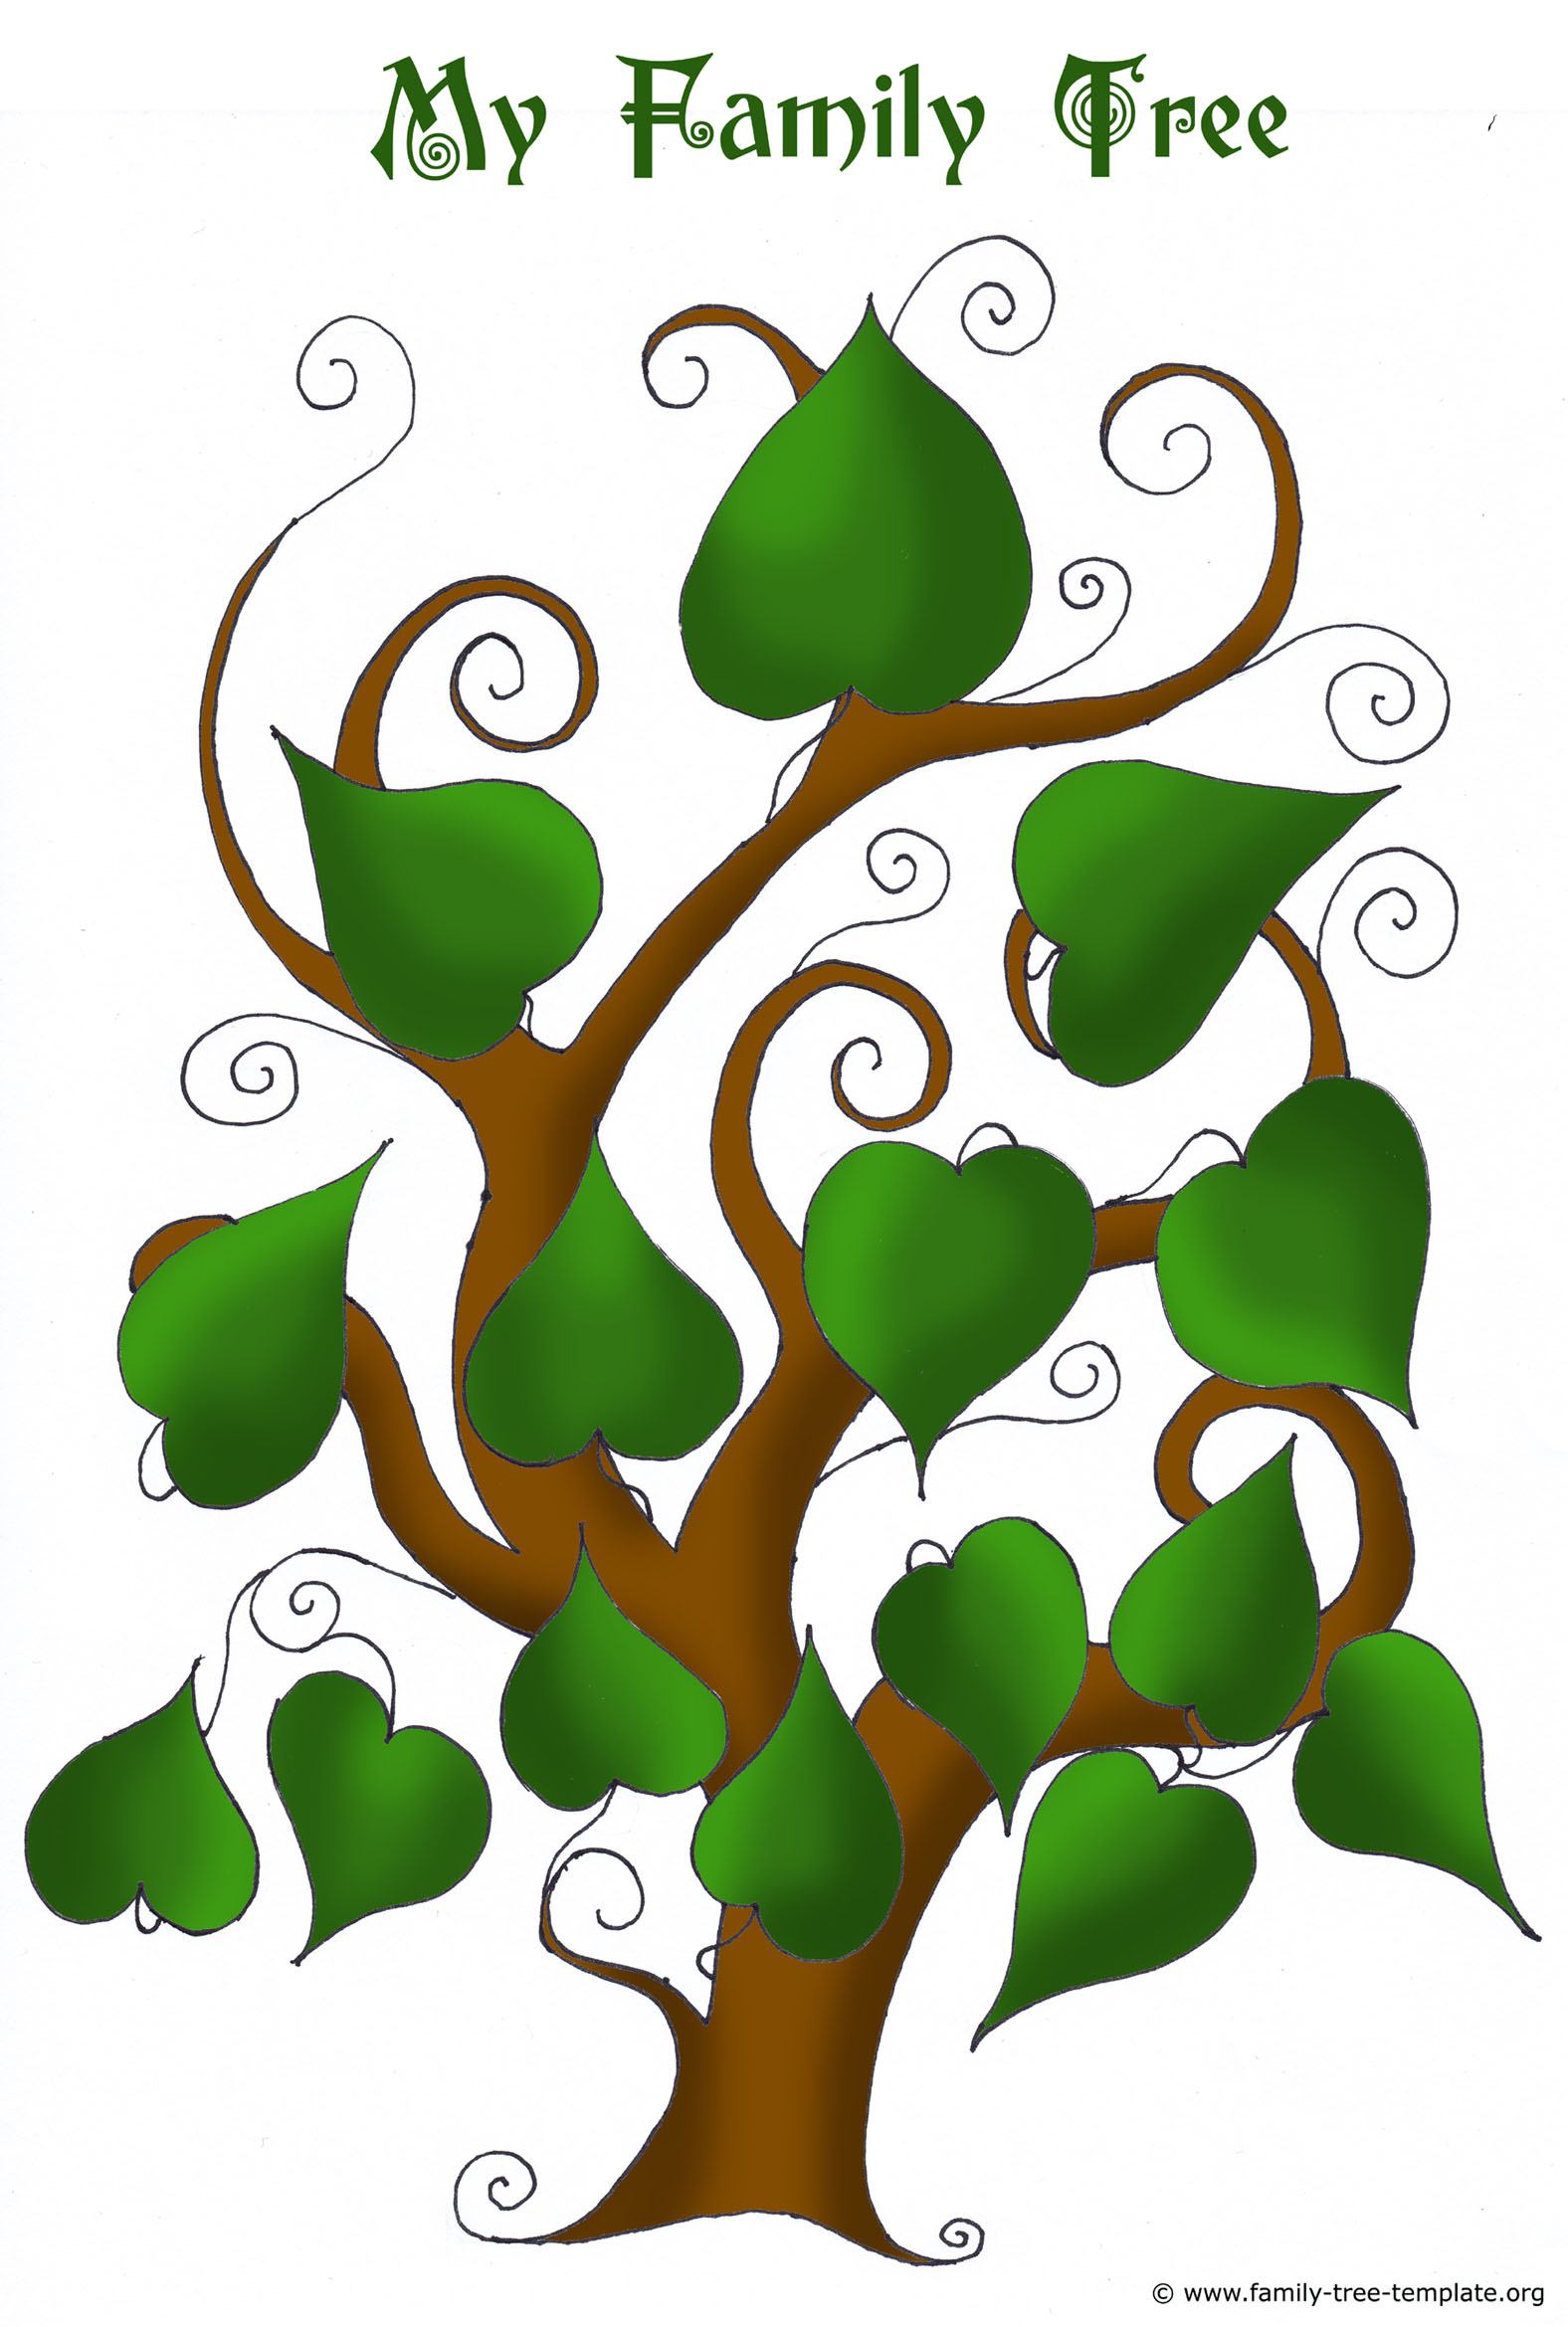 Free family tree templates using free ancestry for Free family tree template